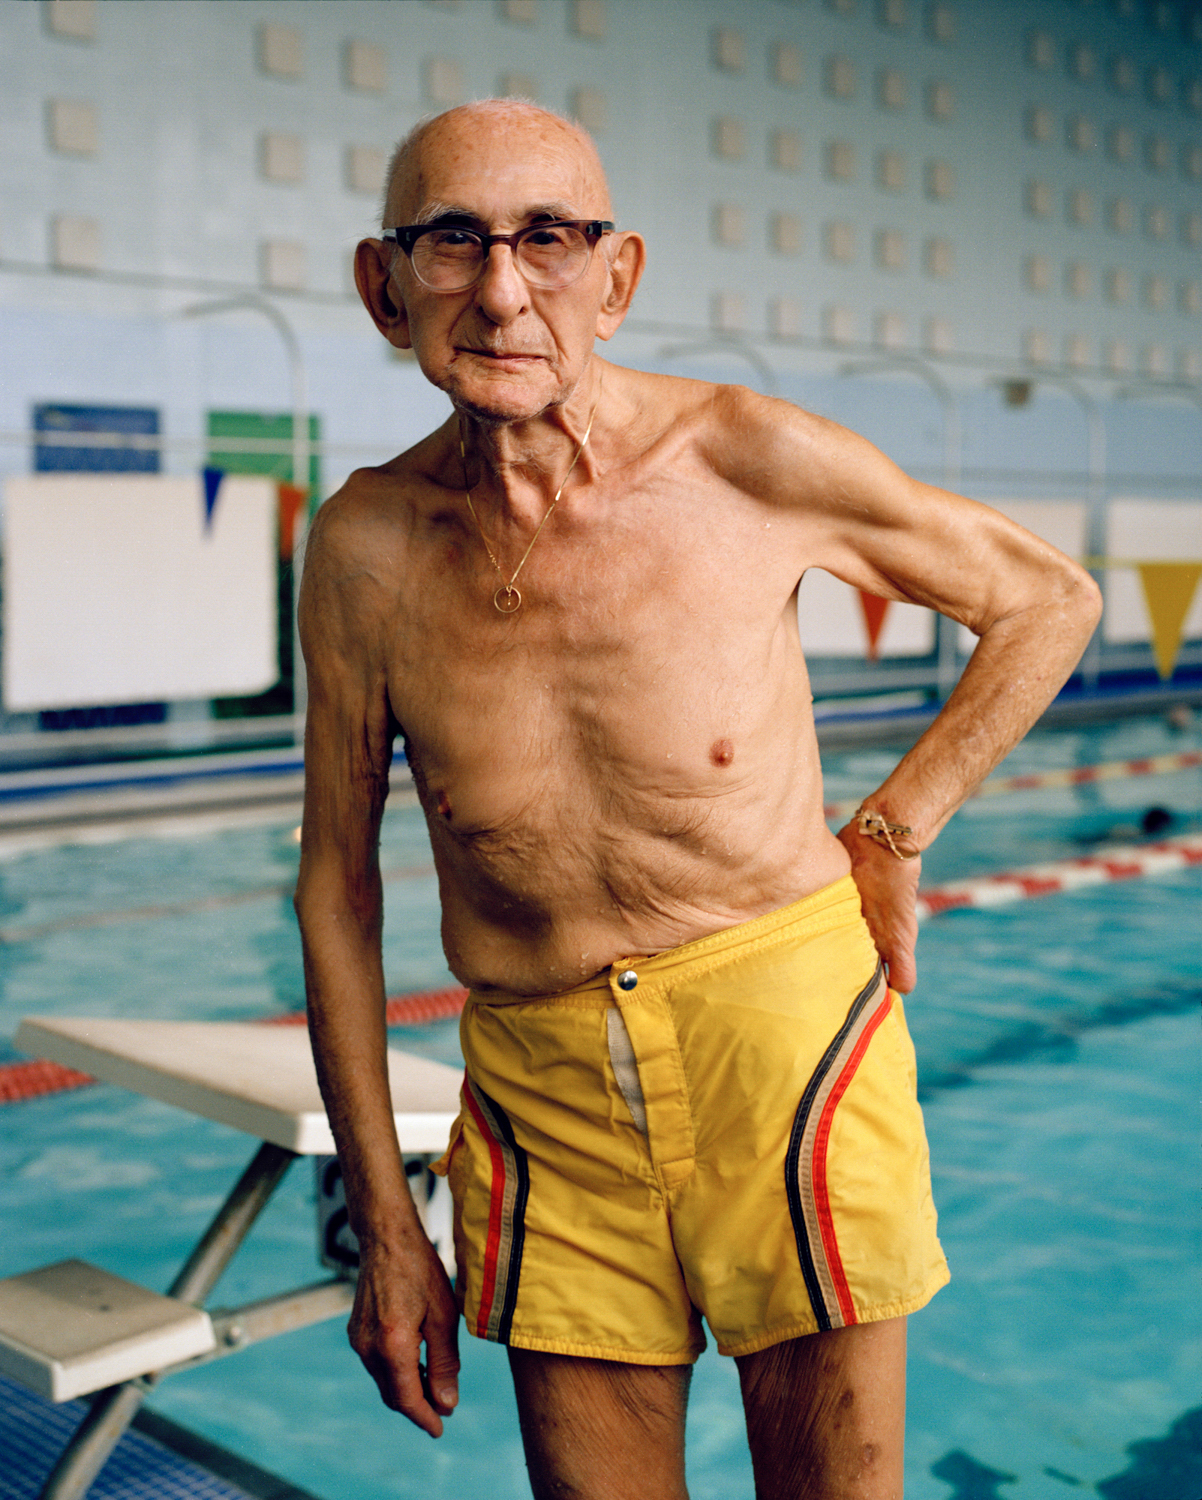 Senior at JCC Indoor Pool, Houston, TX, 1985